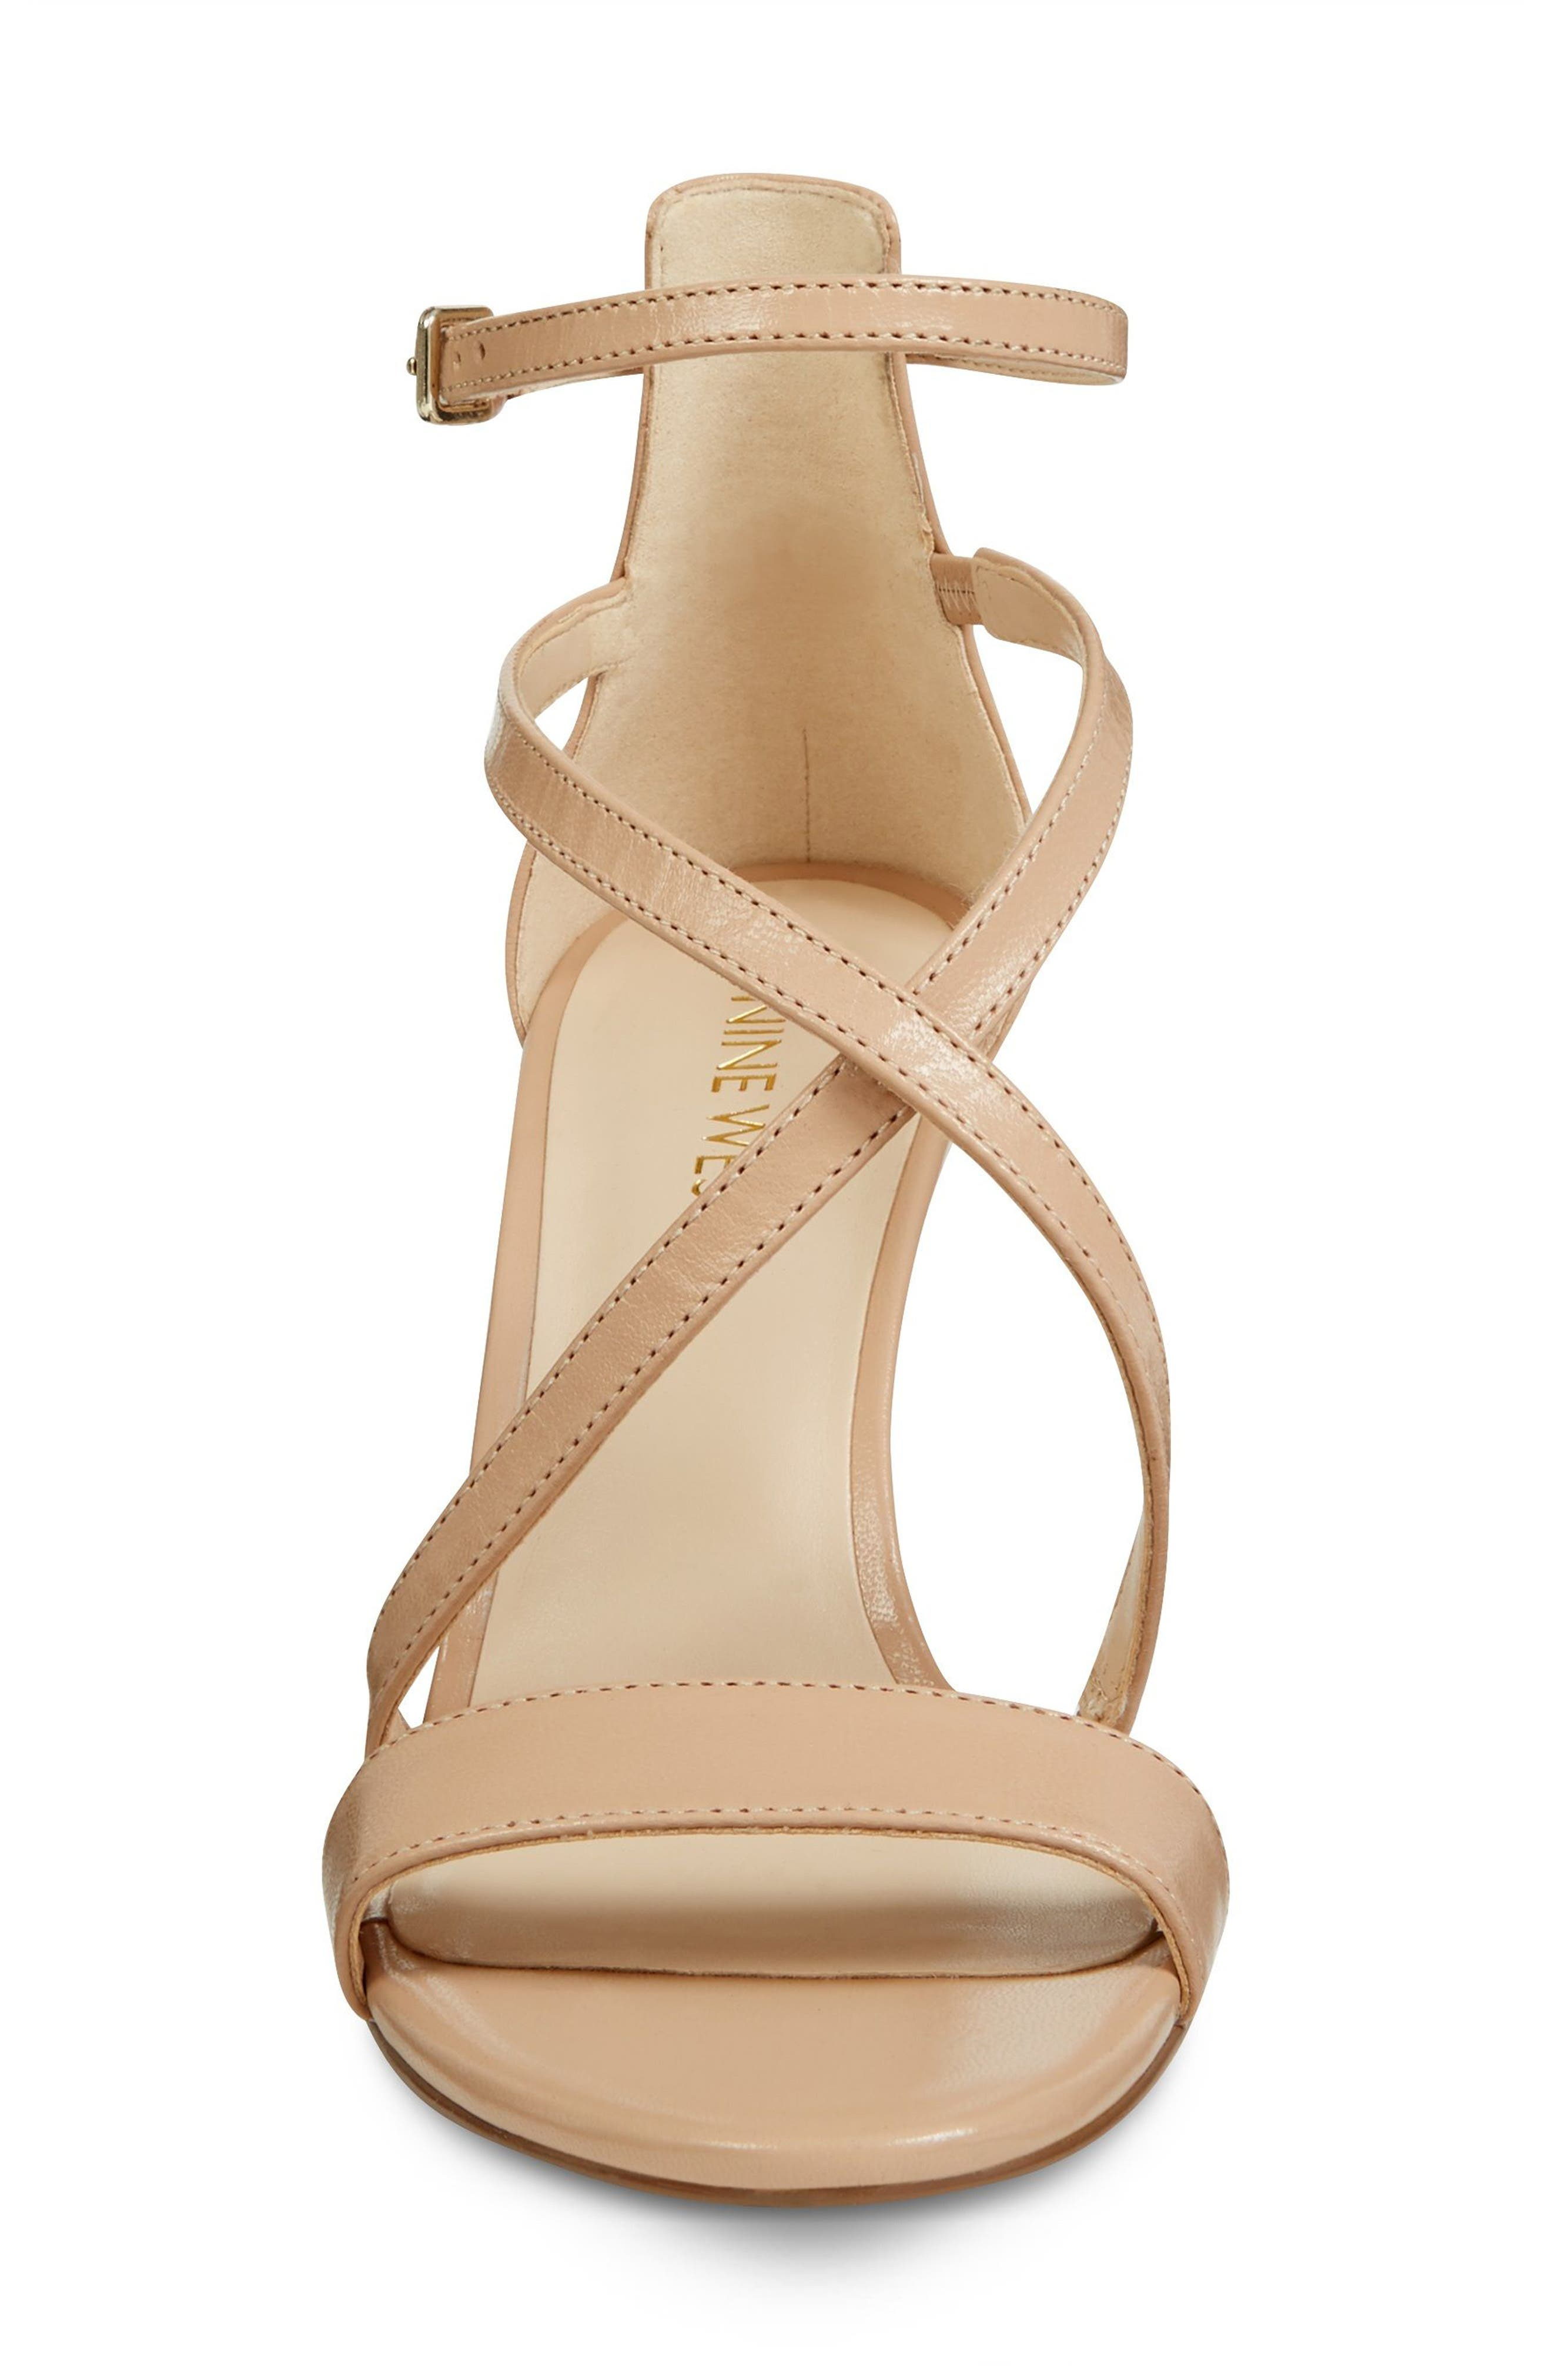 Retail Therapy Strappy Sandal,                             Alternate thumbnail 4, color,                             NATURAL LEATHER